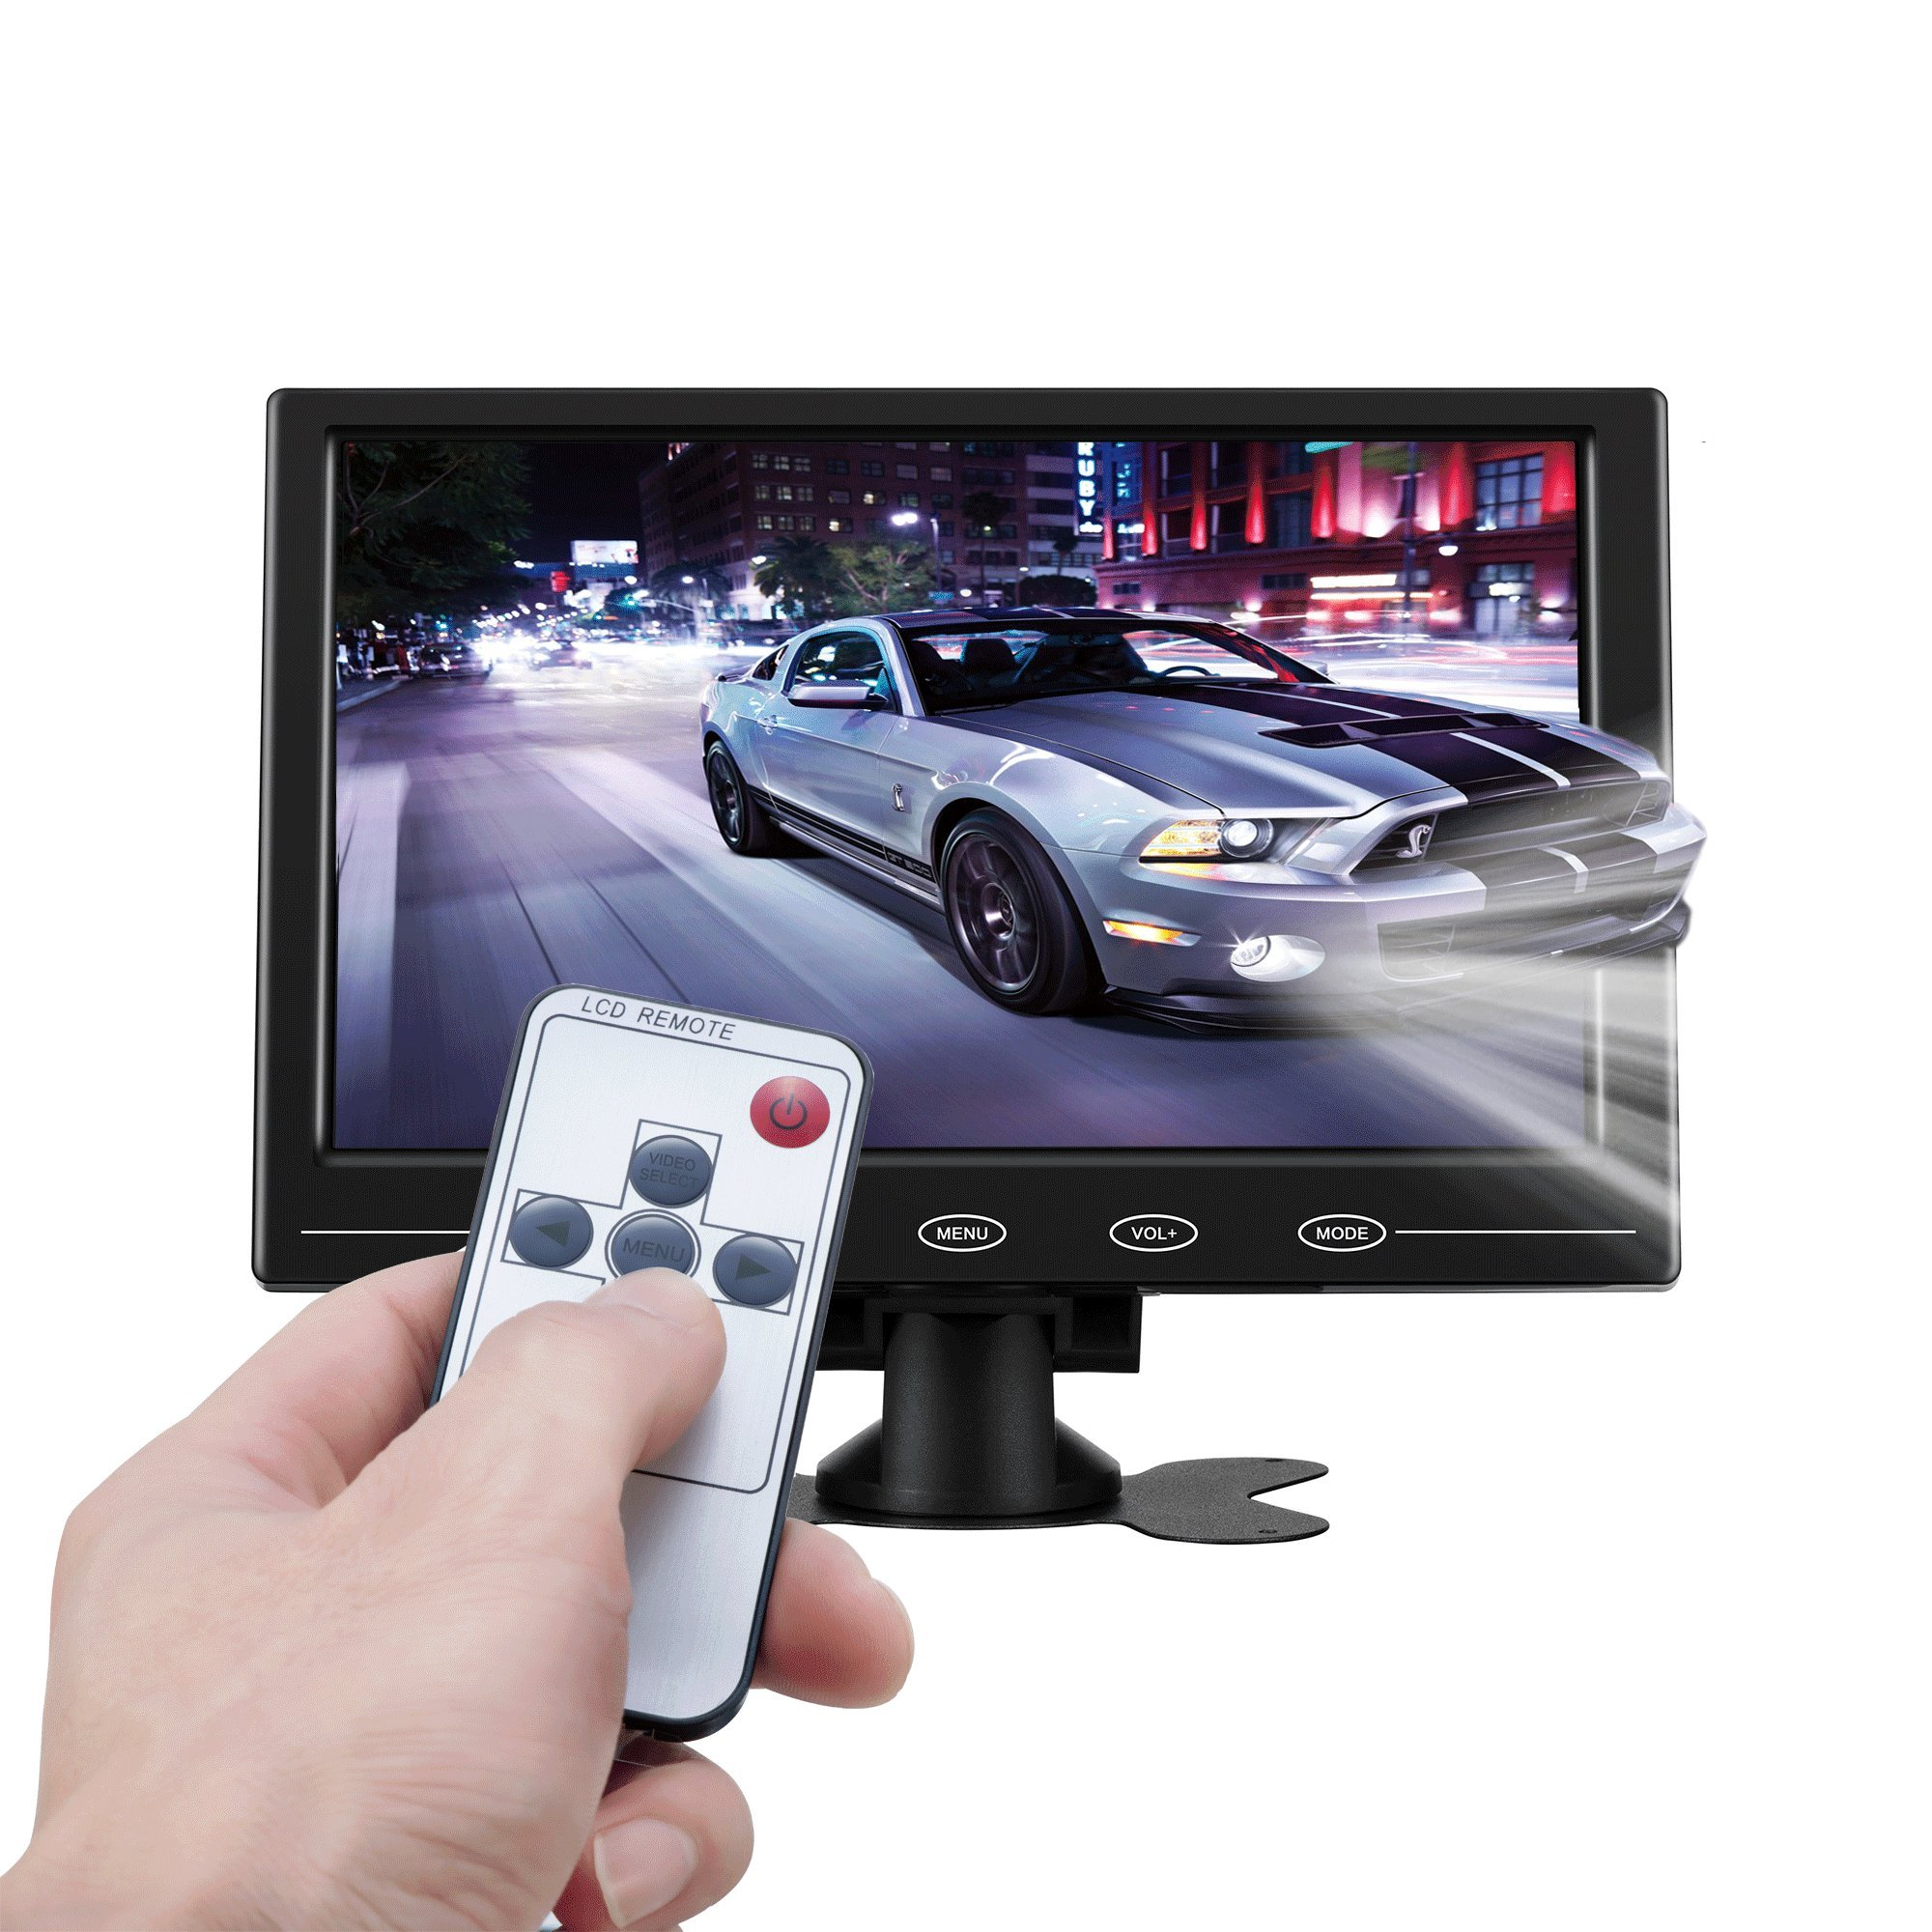 ATian 9'' HD TFT LCD Portable 1080P 1080x720 (16:9 ) High Resolution Color Screen Video Monitor Security Monitor with VGA AV HDMI Input Remote Controller for PC & CCTV & Home Security. by ATian